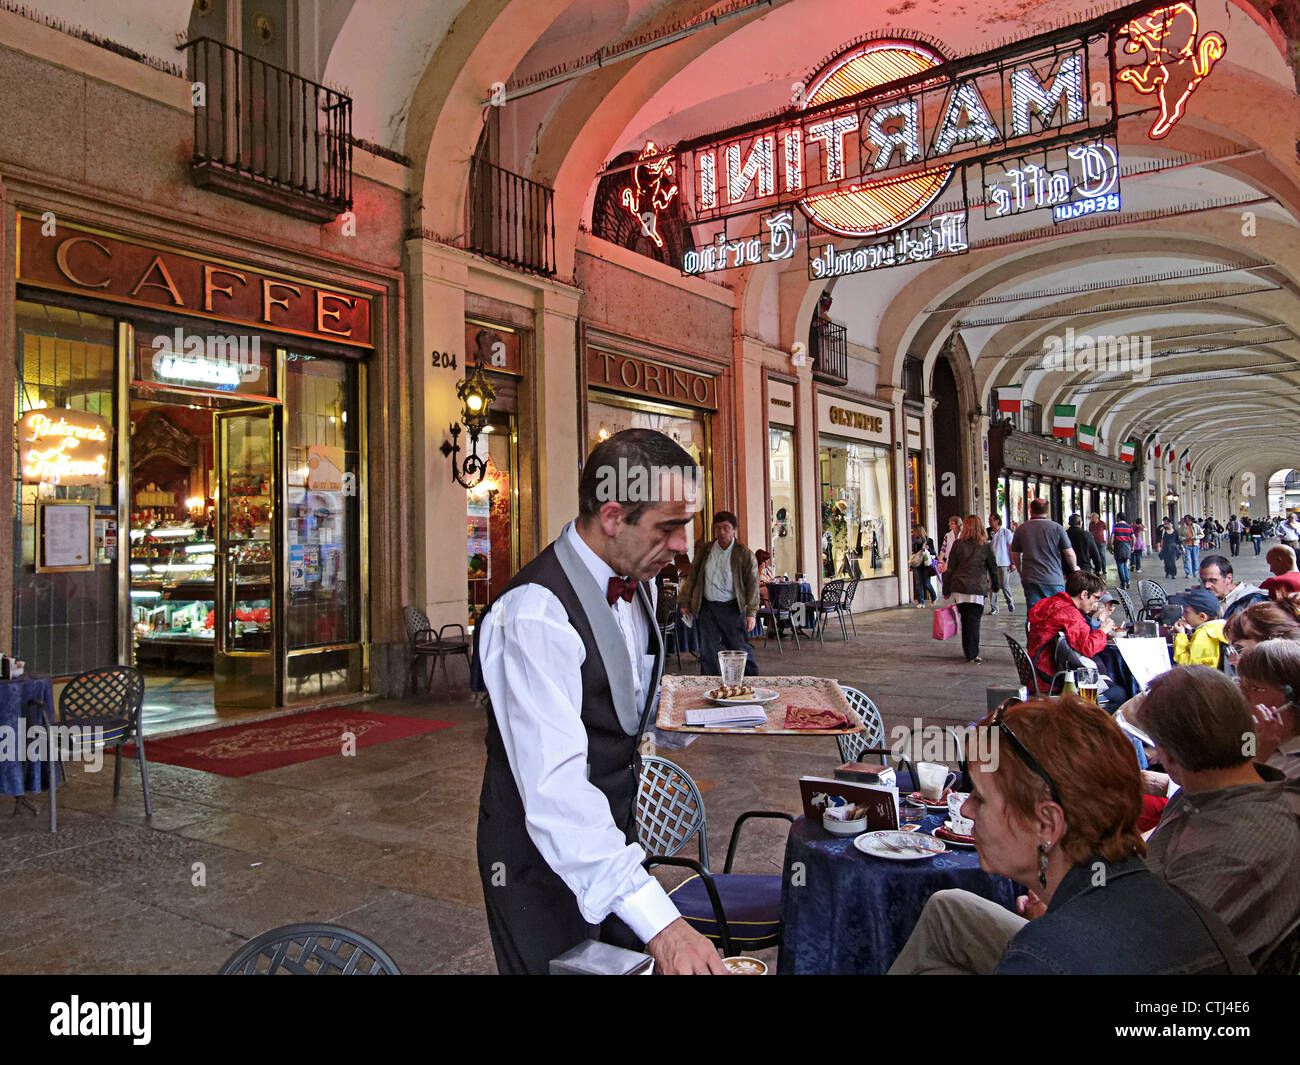 People in front of Cafe Torino , Piazza Castello , Piemont, Italy - Stock Image